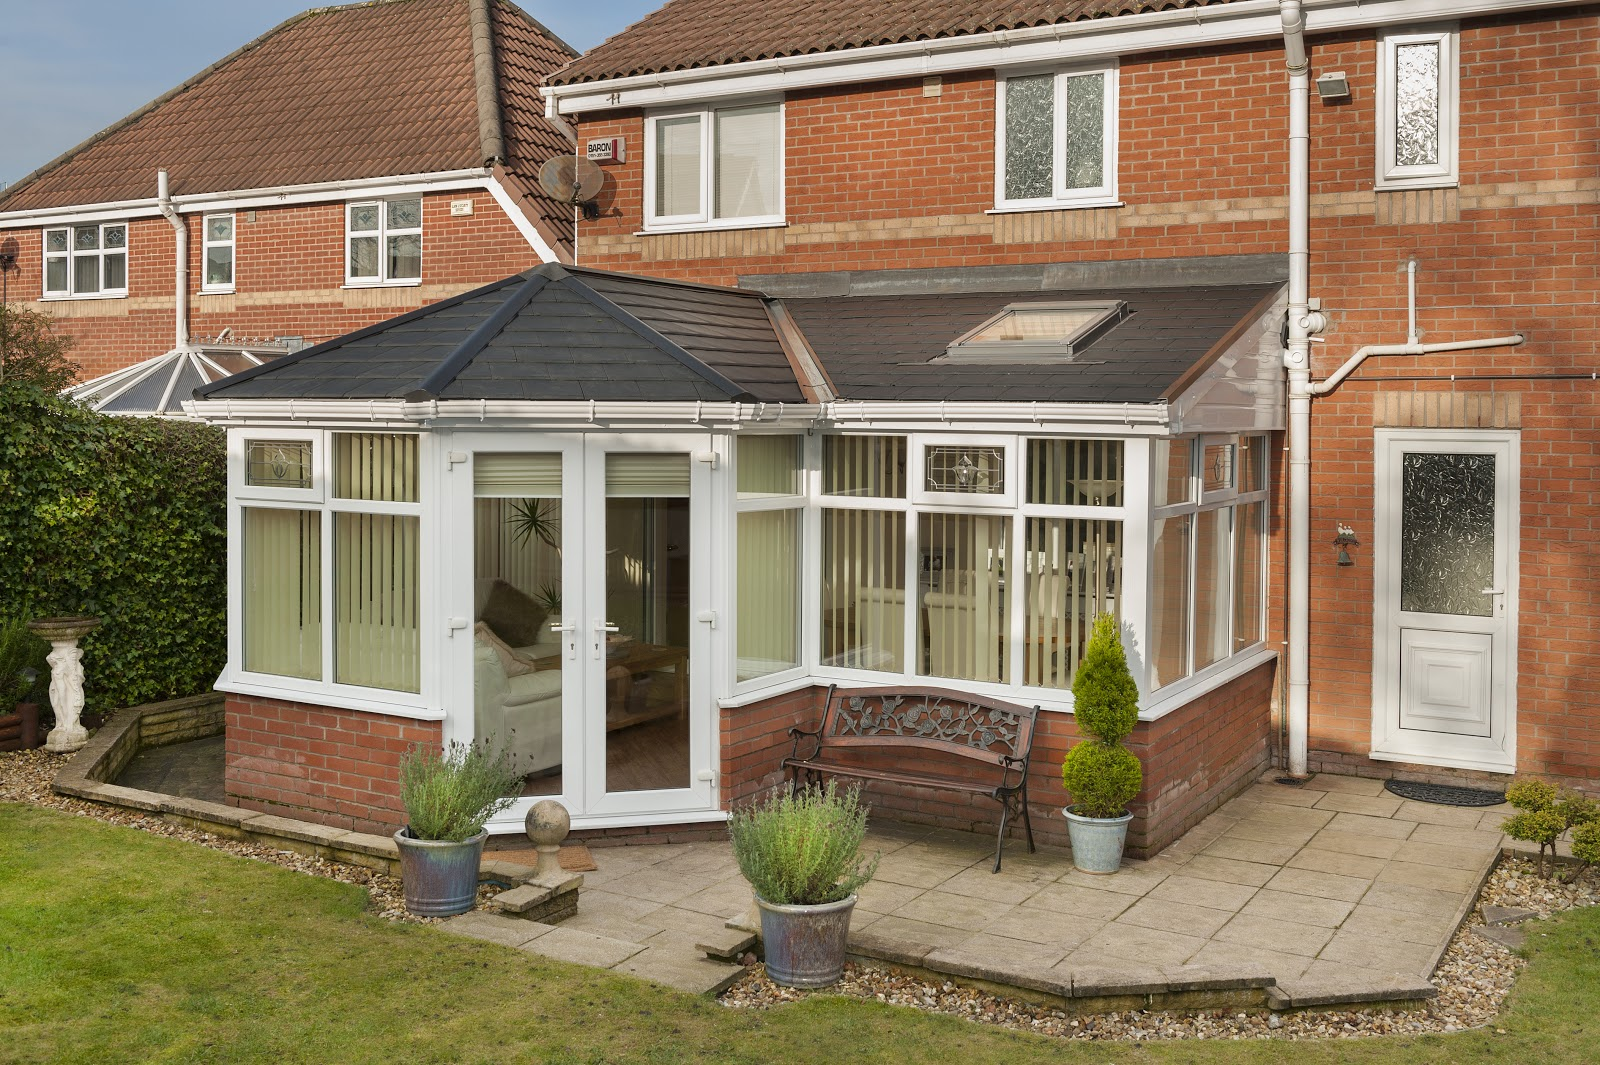 Prefix systems blog march 2013 for Garden room lean to